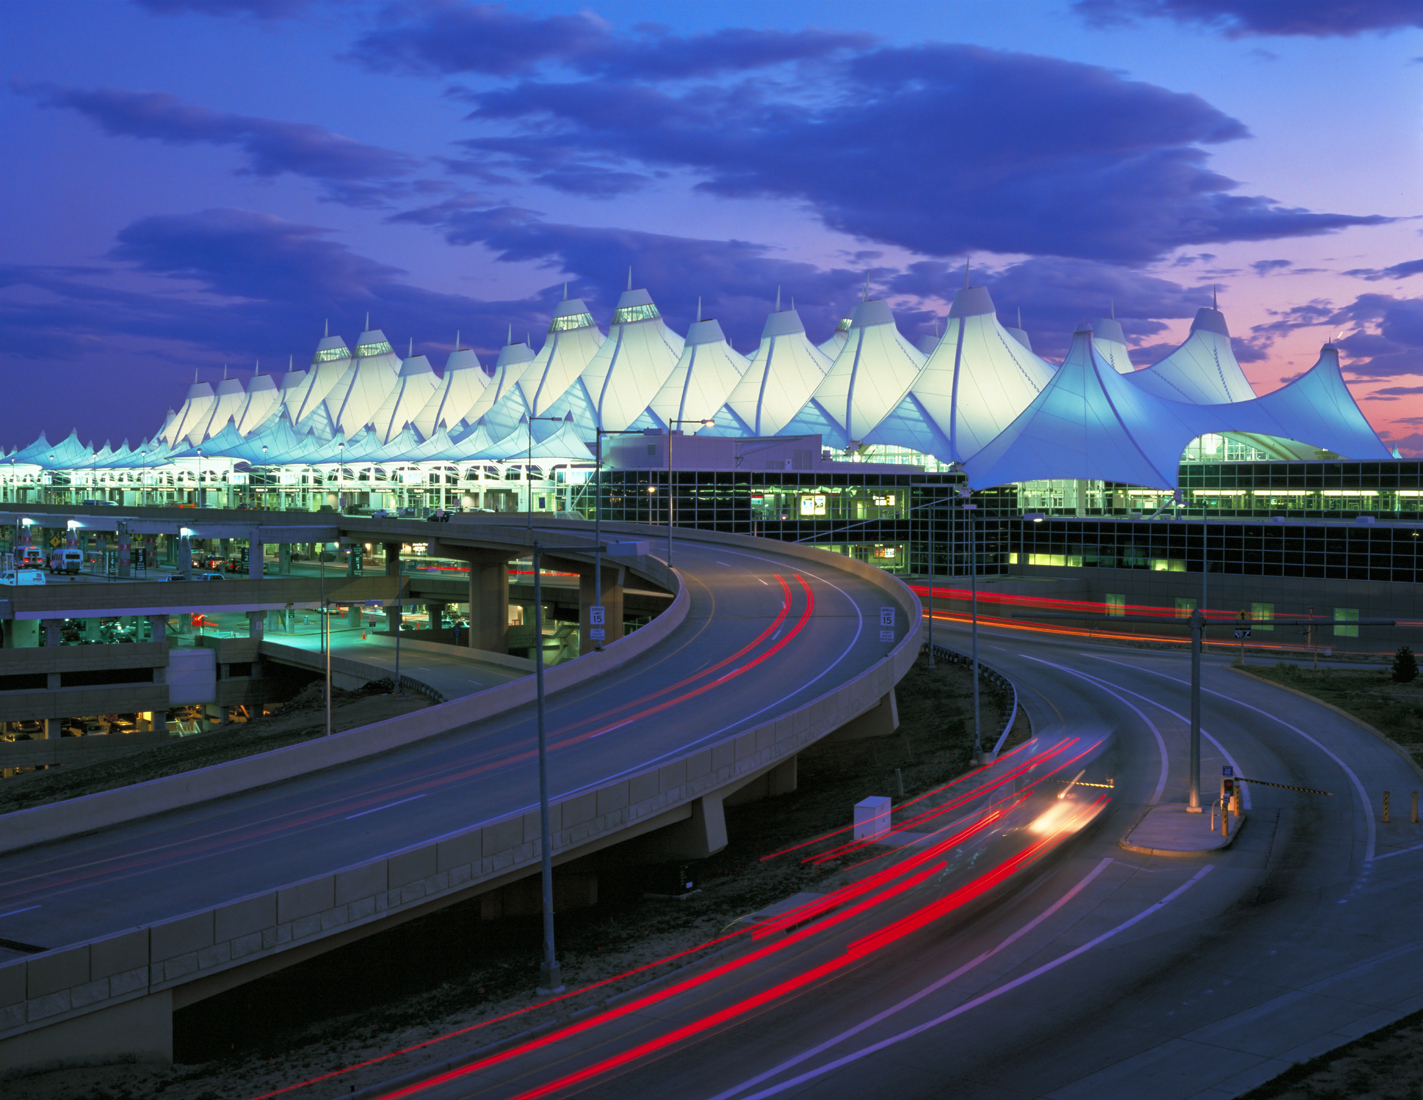 Snafu Denver International Airport A Secret Military